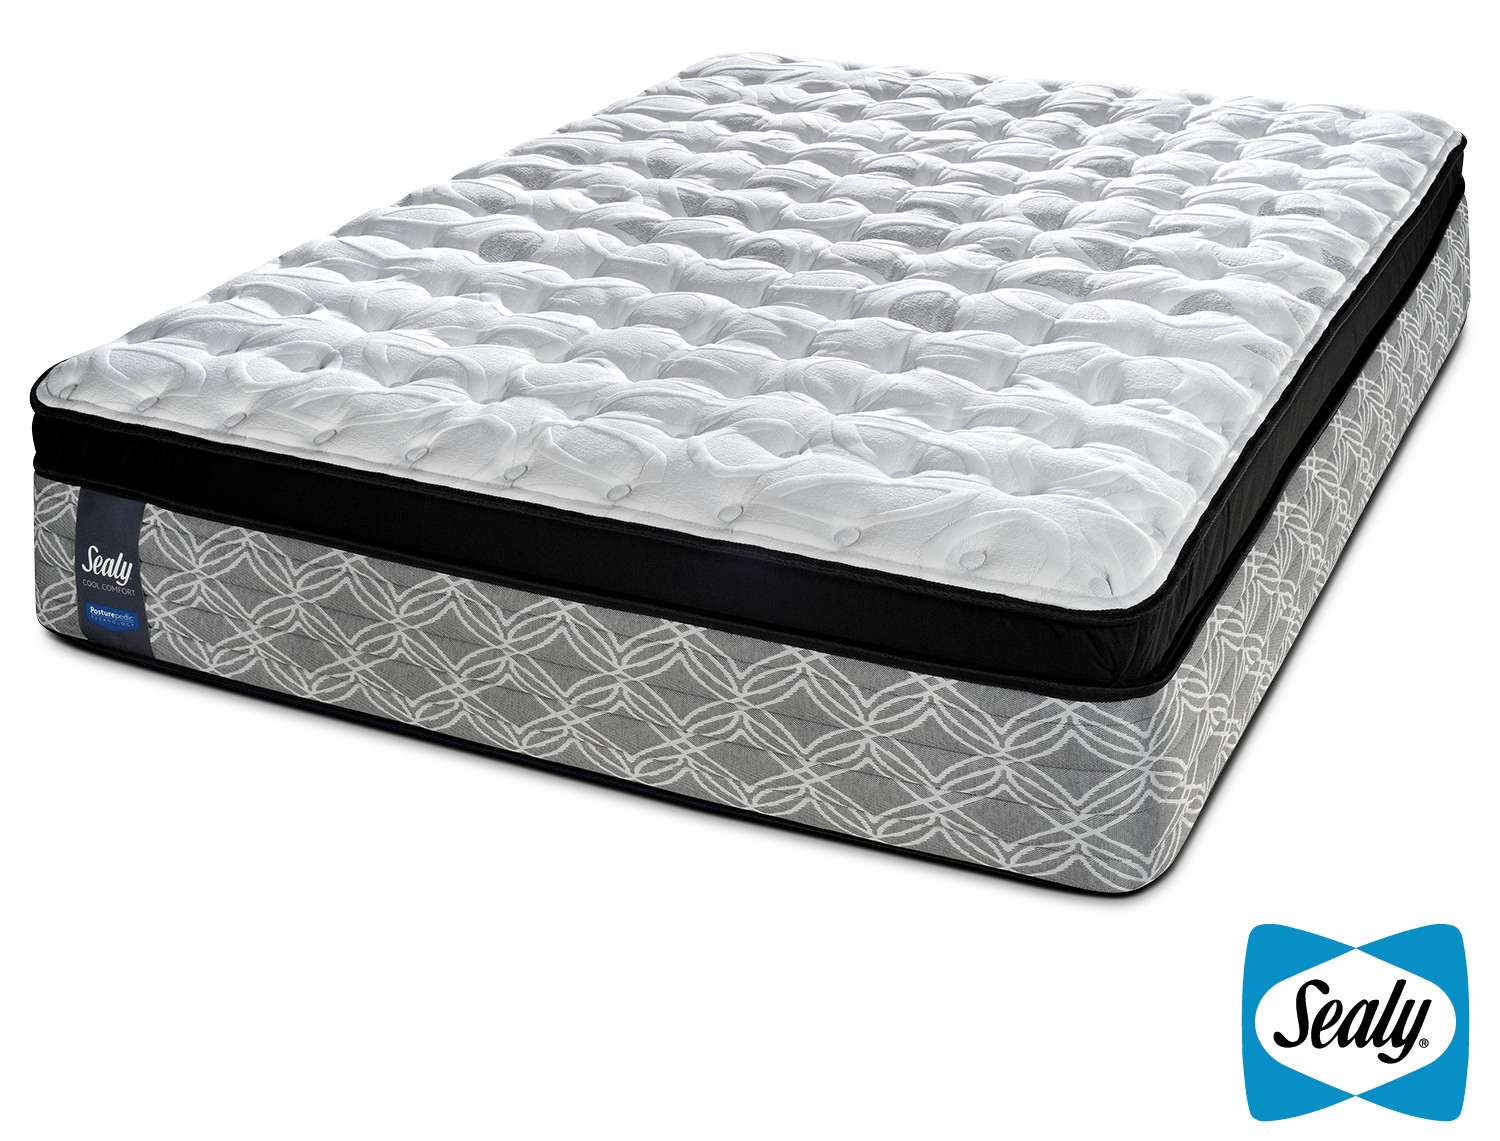 Sealy sundown firm king mattress leon 39 s Mattress king